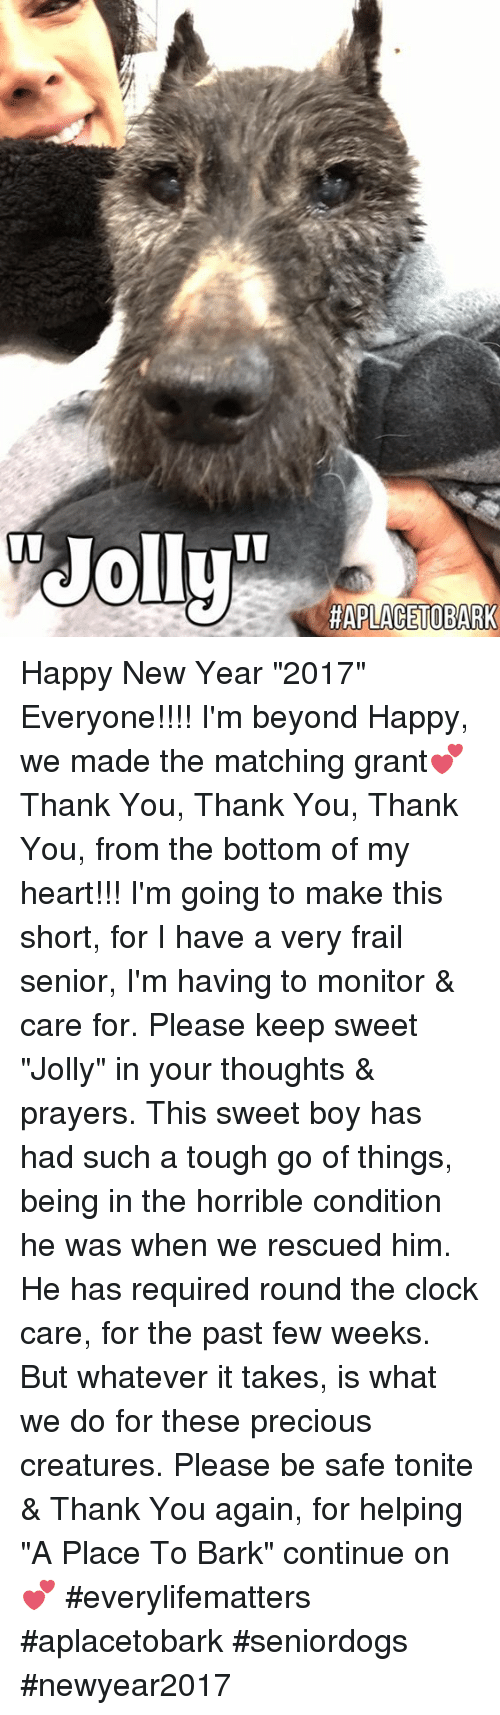 "Clock, Memes, and 2017: HAPLACETOBARK Happy New Year ""2017"" Everyone!!!! I'm beyond Happy, we made the matching grant💕 Thank You, Thank You, Thank You, from the bottom of my heart!!! I'm going to make this short, for I have a very frail senior, I'm having to monitor & care for.  Please keep sweet ""Jolly"" in your thoughts & prayers.  This sweet boy has had such a tough go of things, being in the horrible condition he was when we rescued him.  He has required round the clock care, for the past few weeks.  But whatever it takes, is what we do for these precious creatures. Please be safe tonite & Thank You again, for helping ""A Place To Bark"" continue on💕  #everylifematters #aplacetobark #seniordogs #newyear2017"